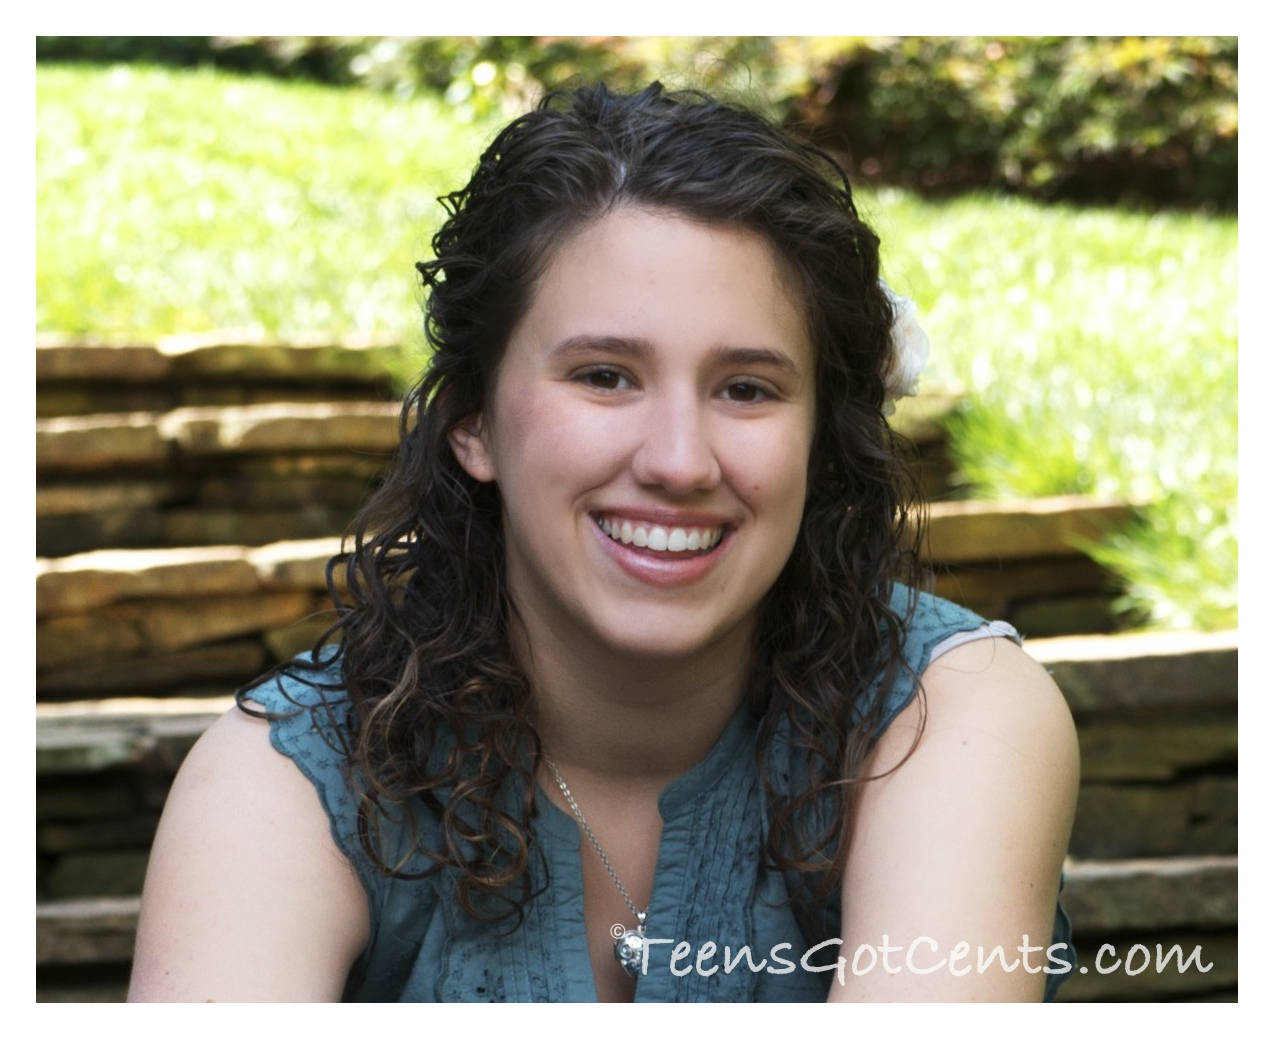 Money Advice For Teens: Interview with Eva From Teens Got Cents RPF0127